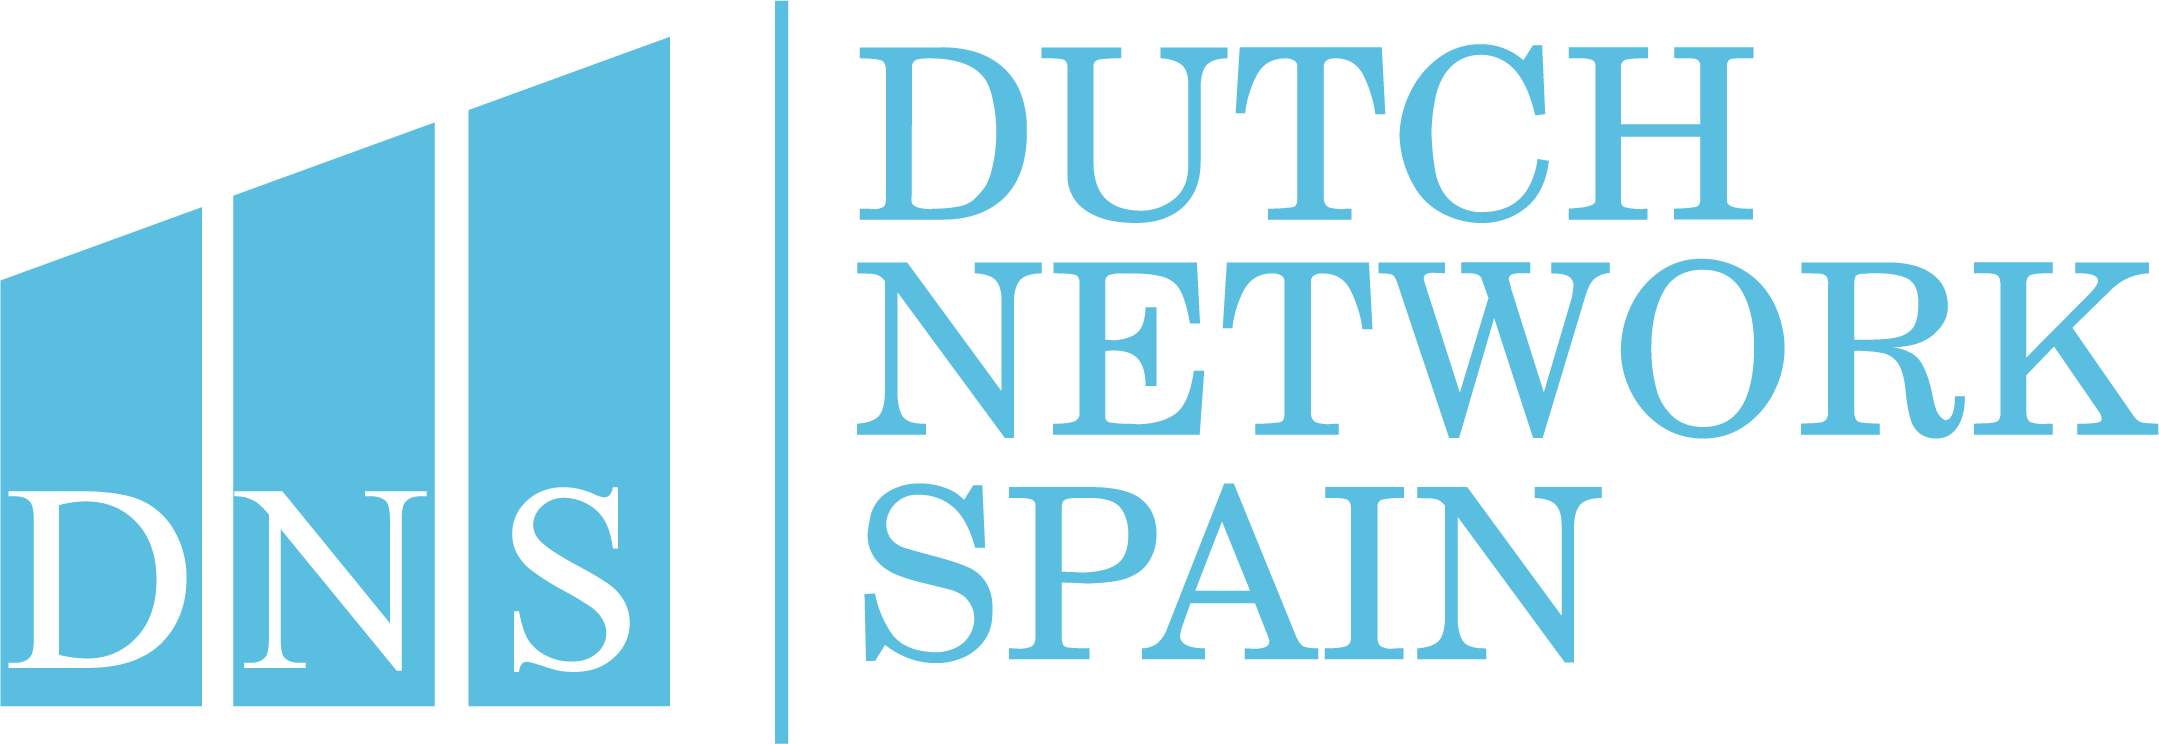 Dutch Network Spain